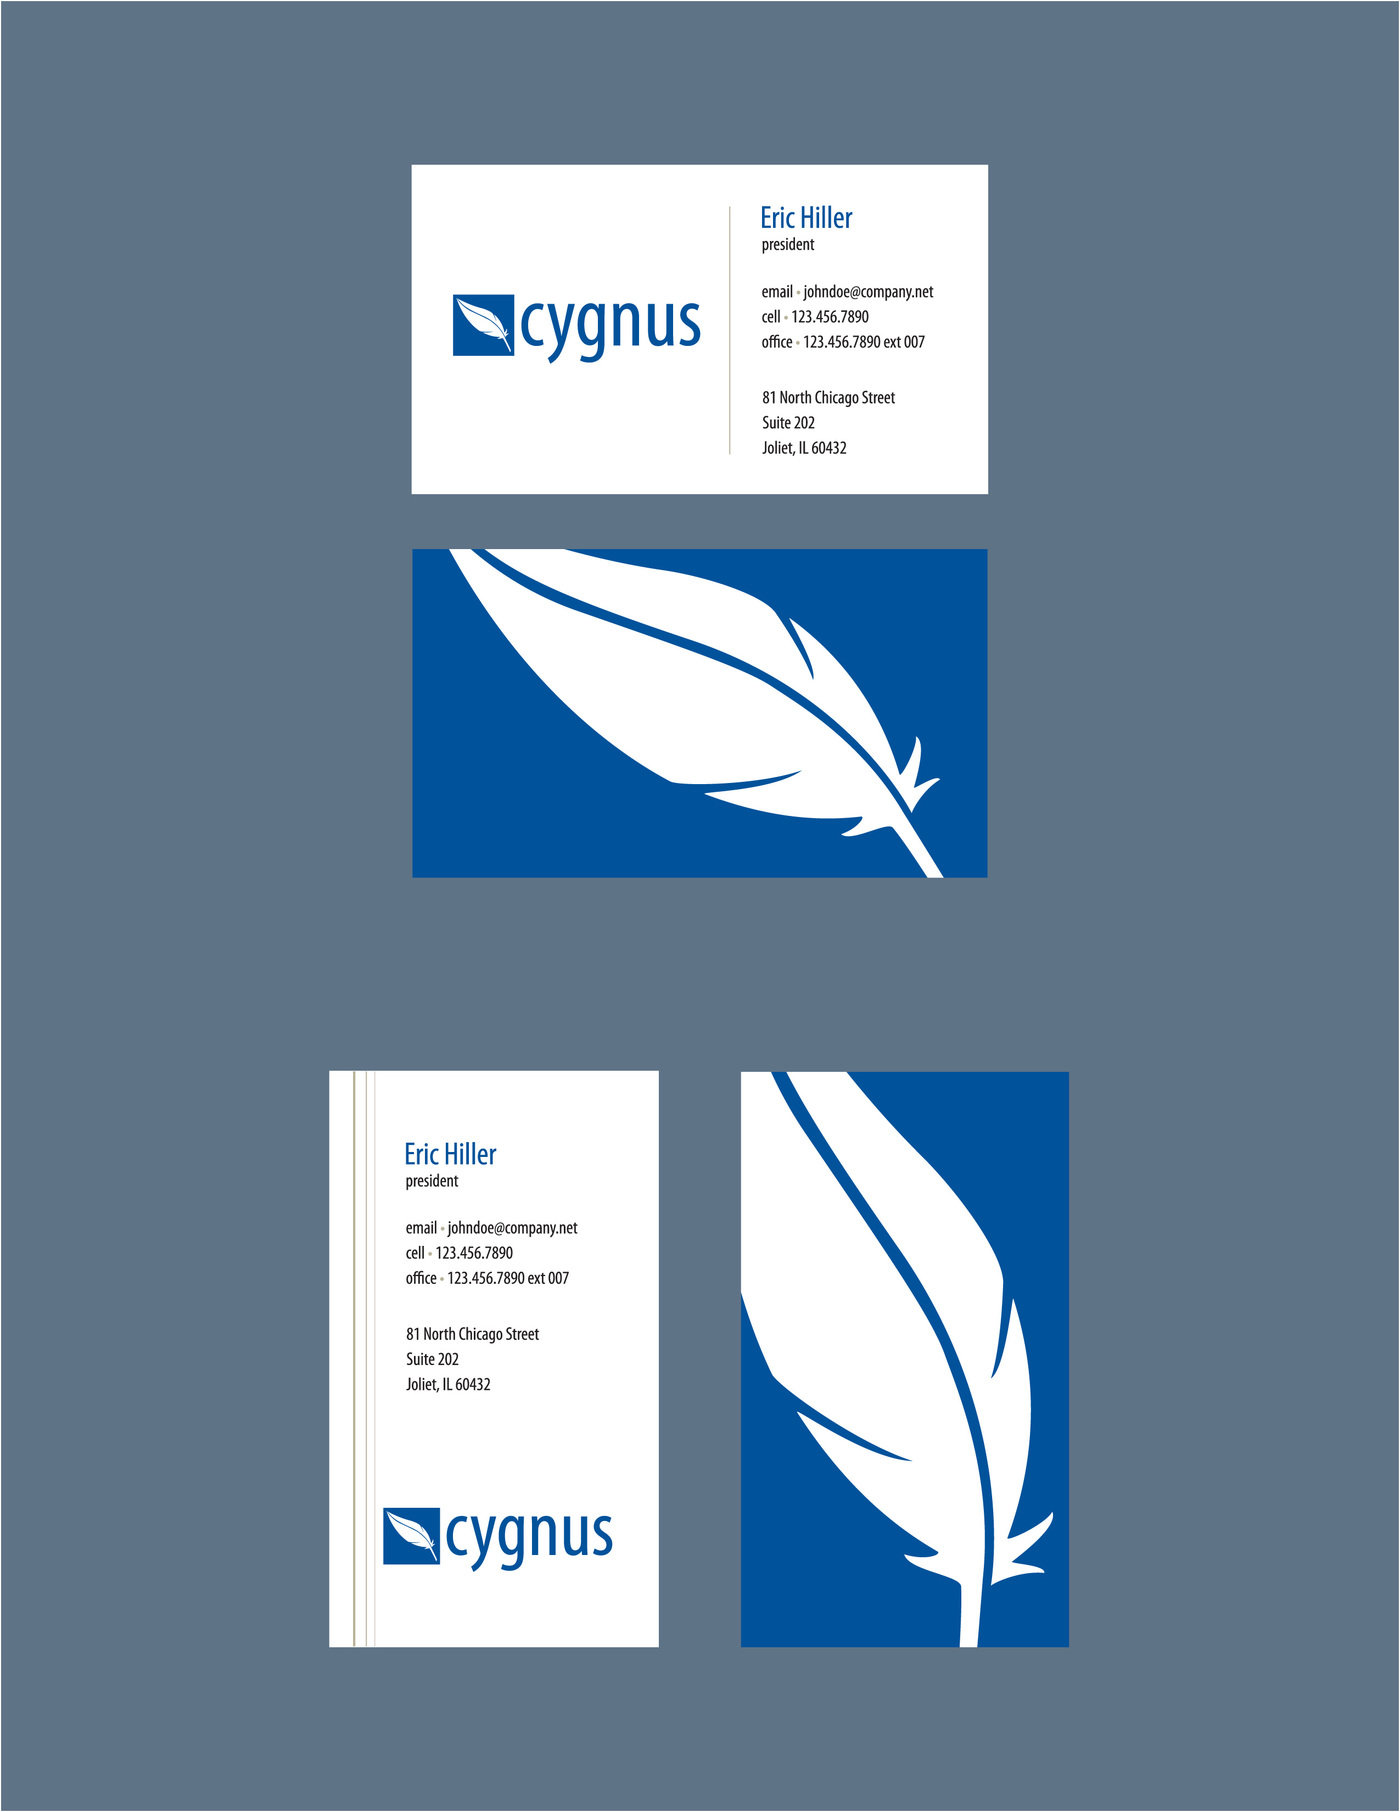 Cygnus identity proposal in progress by karen burcham at business cards cygnus communications is a growing business providing commercial and residential telecommunications services with a large expansion coming reheart Images